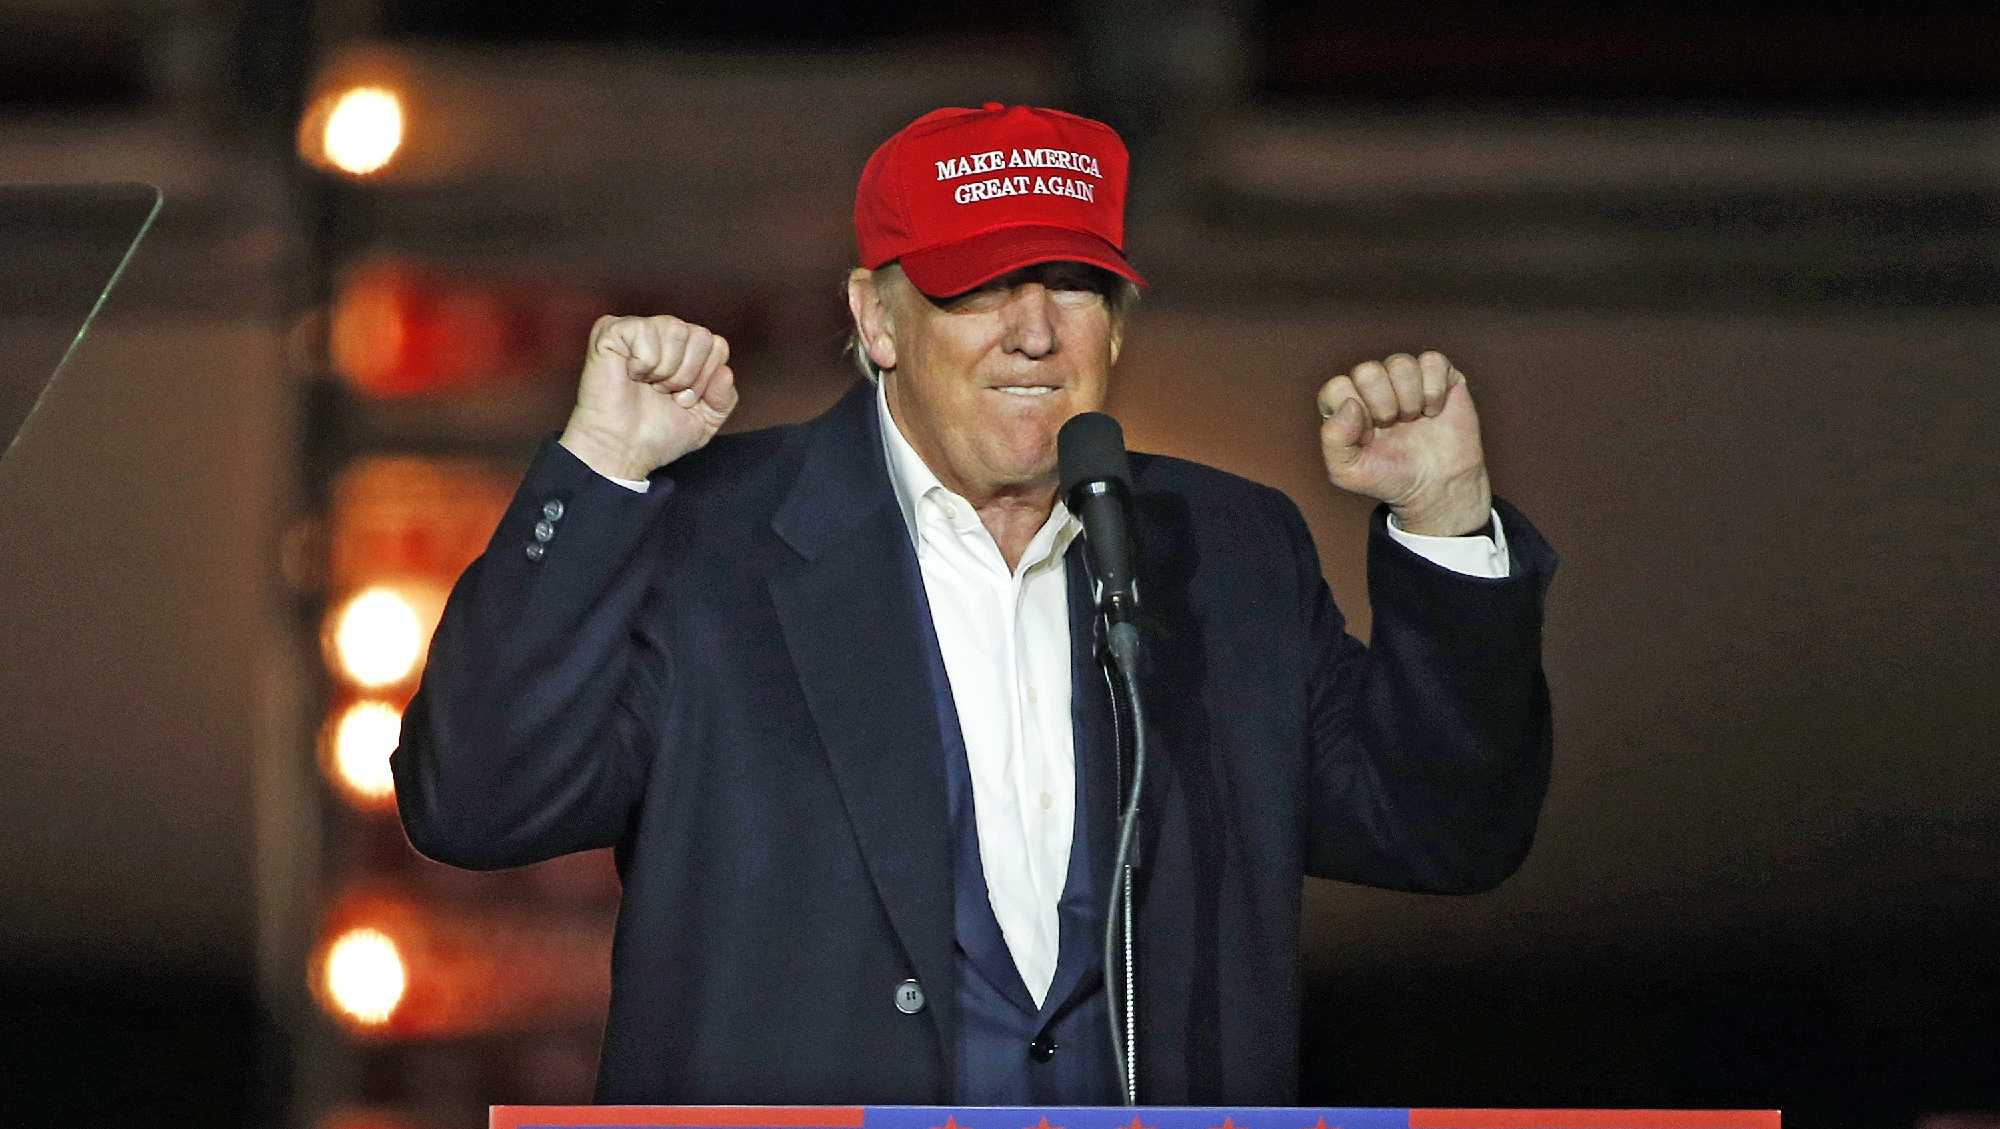 Donald Trump didn't win Massachusetts, but he did win in nearly 80 cities and towns, according to the unofficial results.